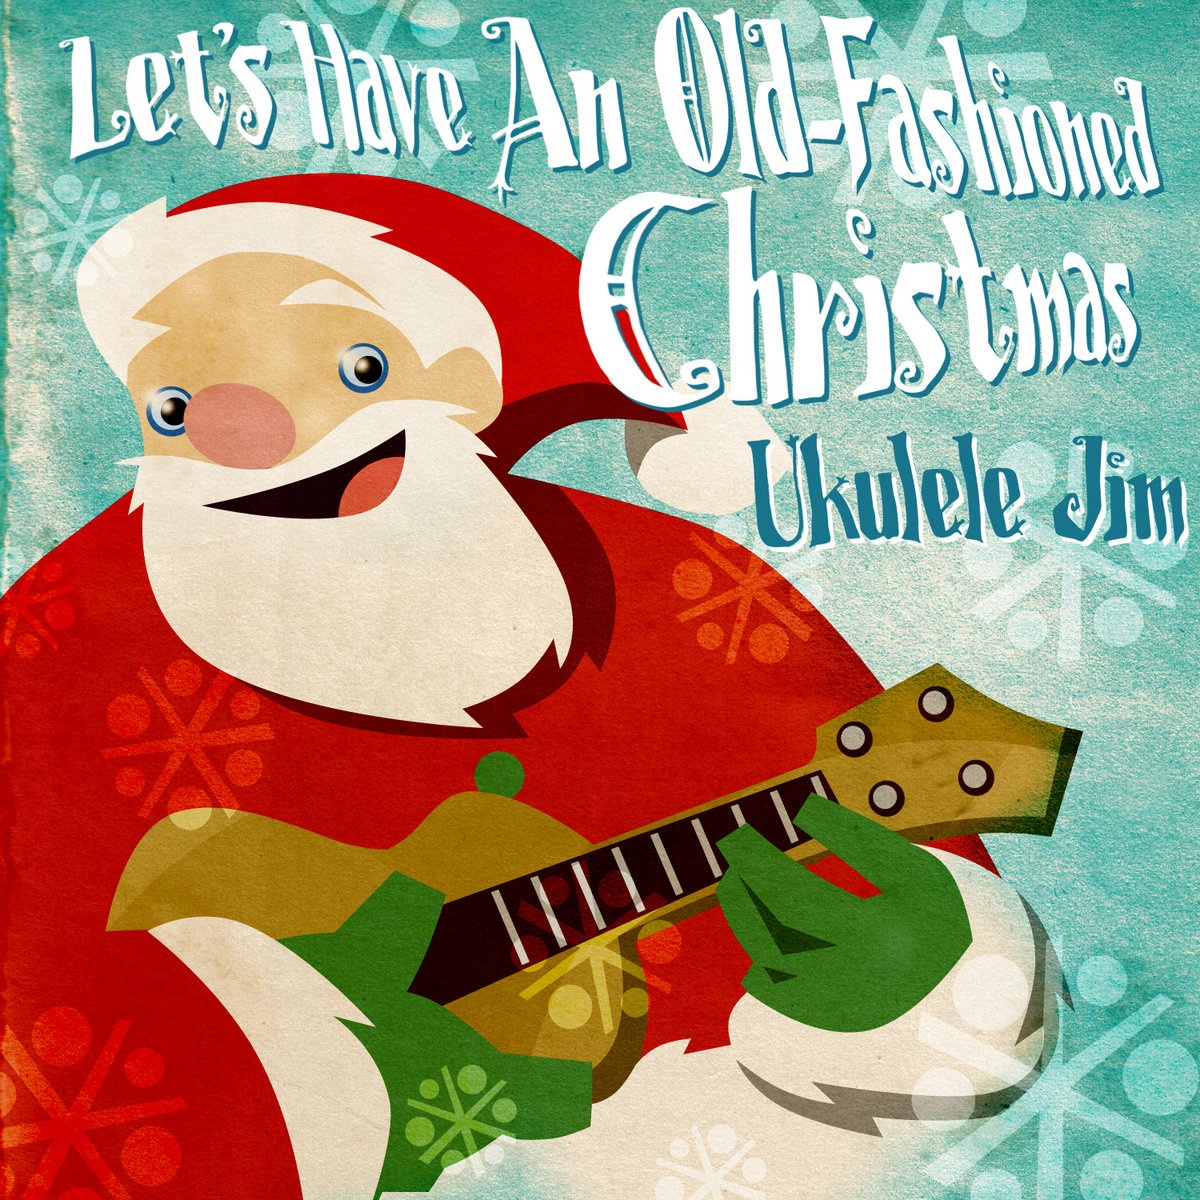 Let\'s Have An Old Fashioned Christmas   Ukulele Jim